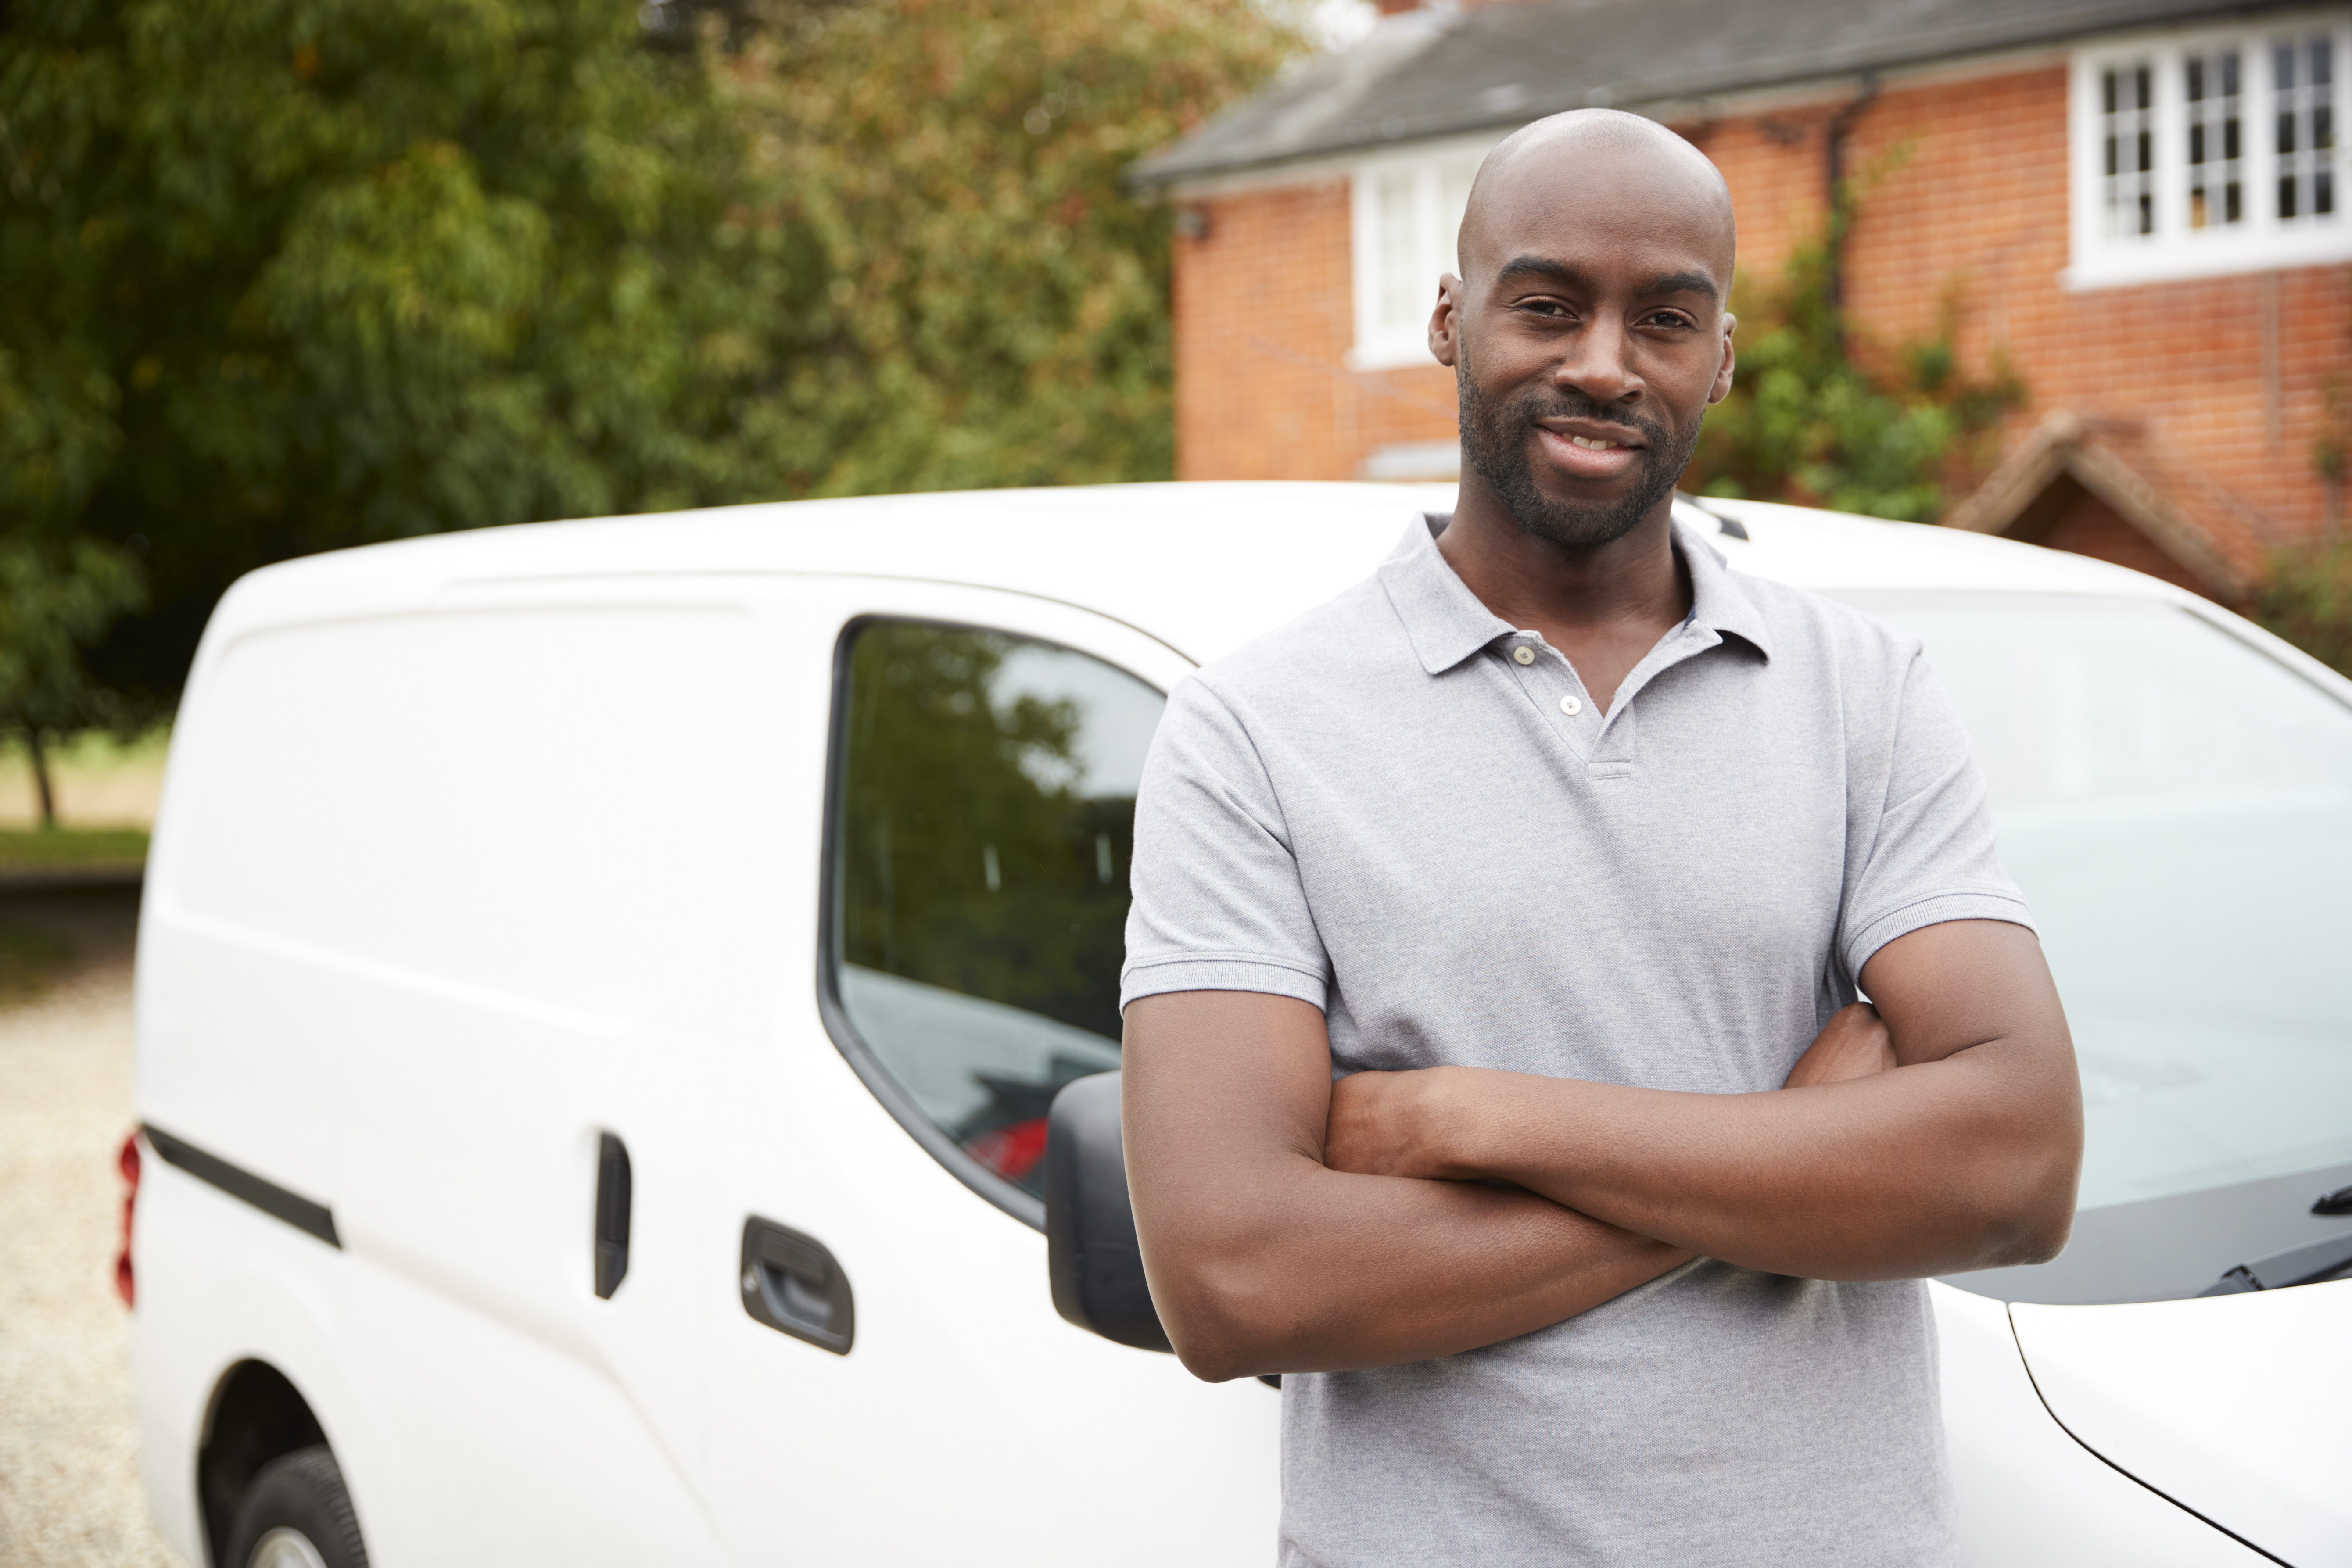 young-adult-tradesman-standing-next-to-his-blank-white-van-needs-vehicle-signage